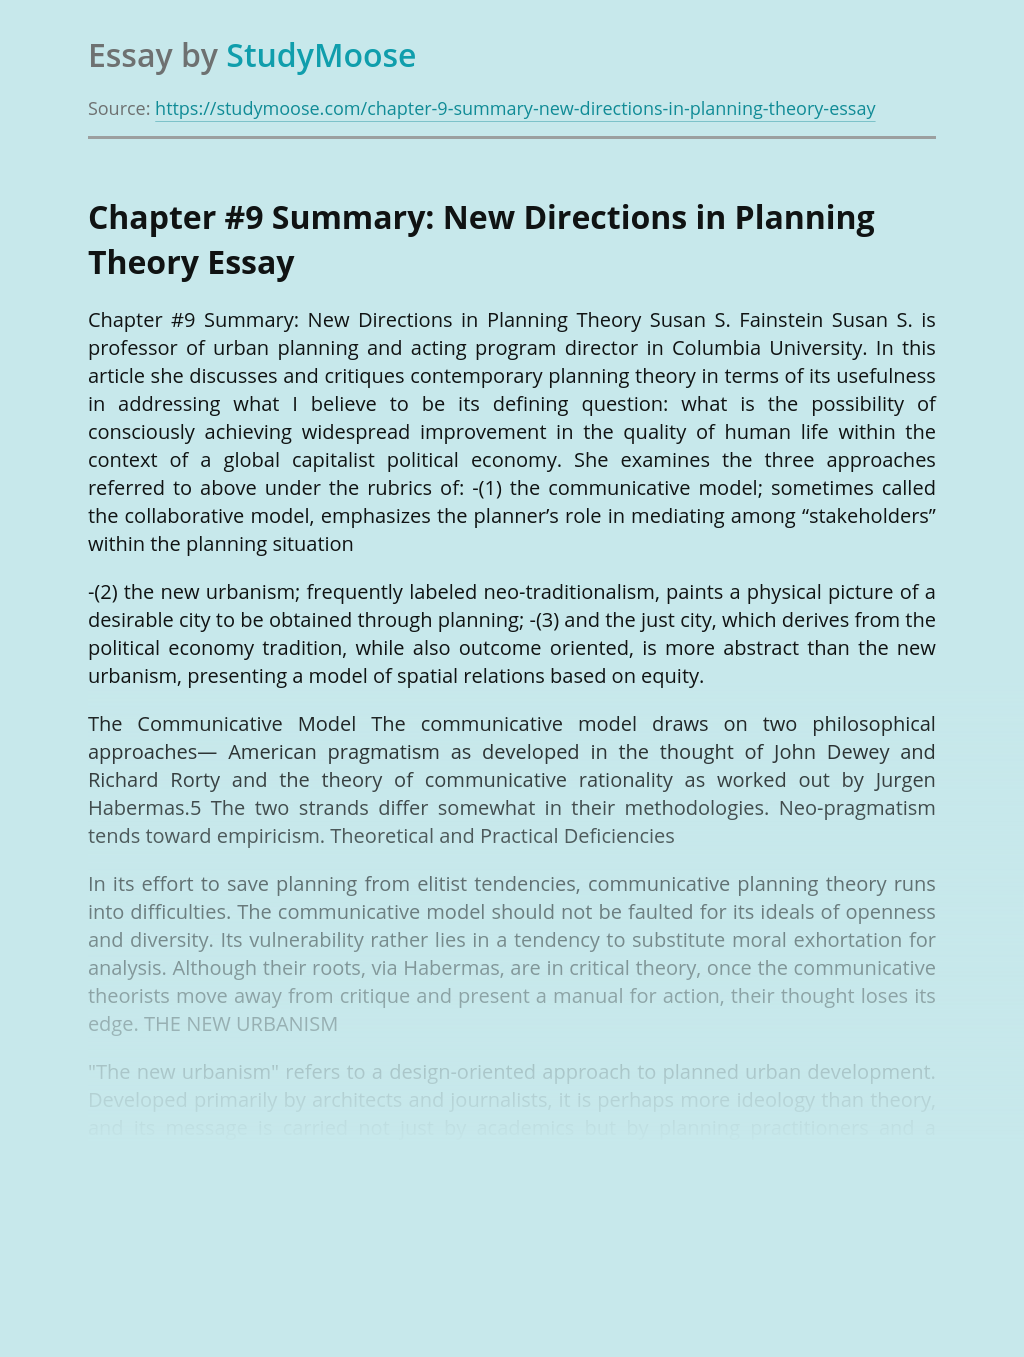 New Directions in Planning Theory